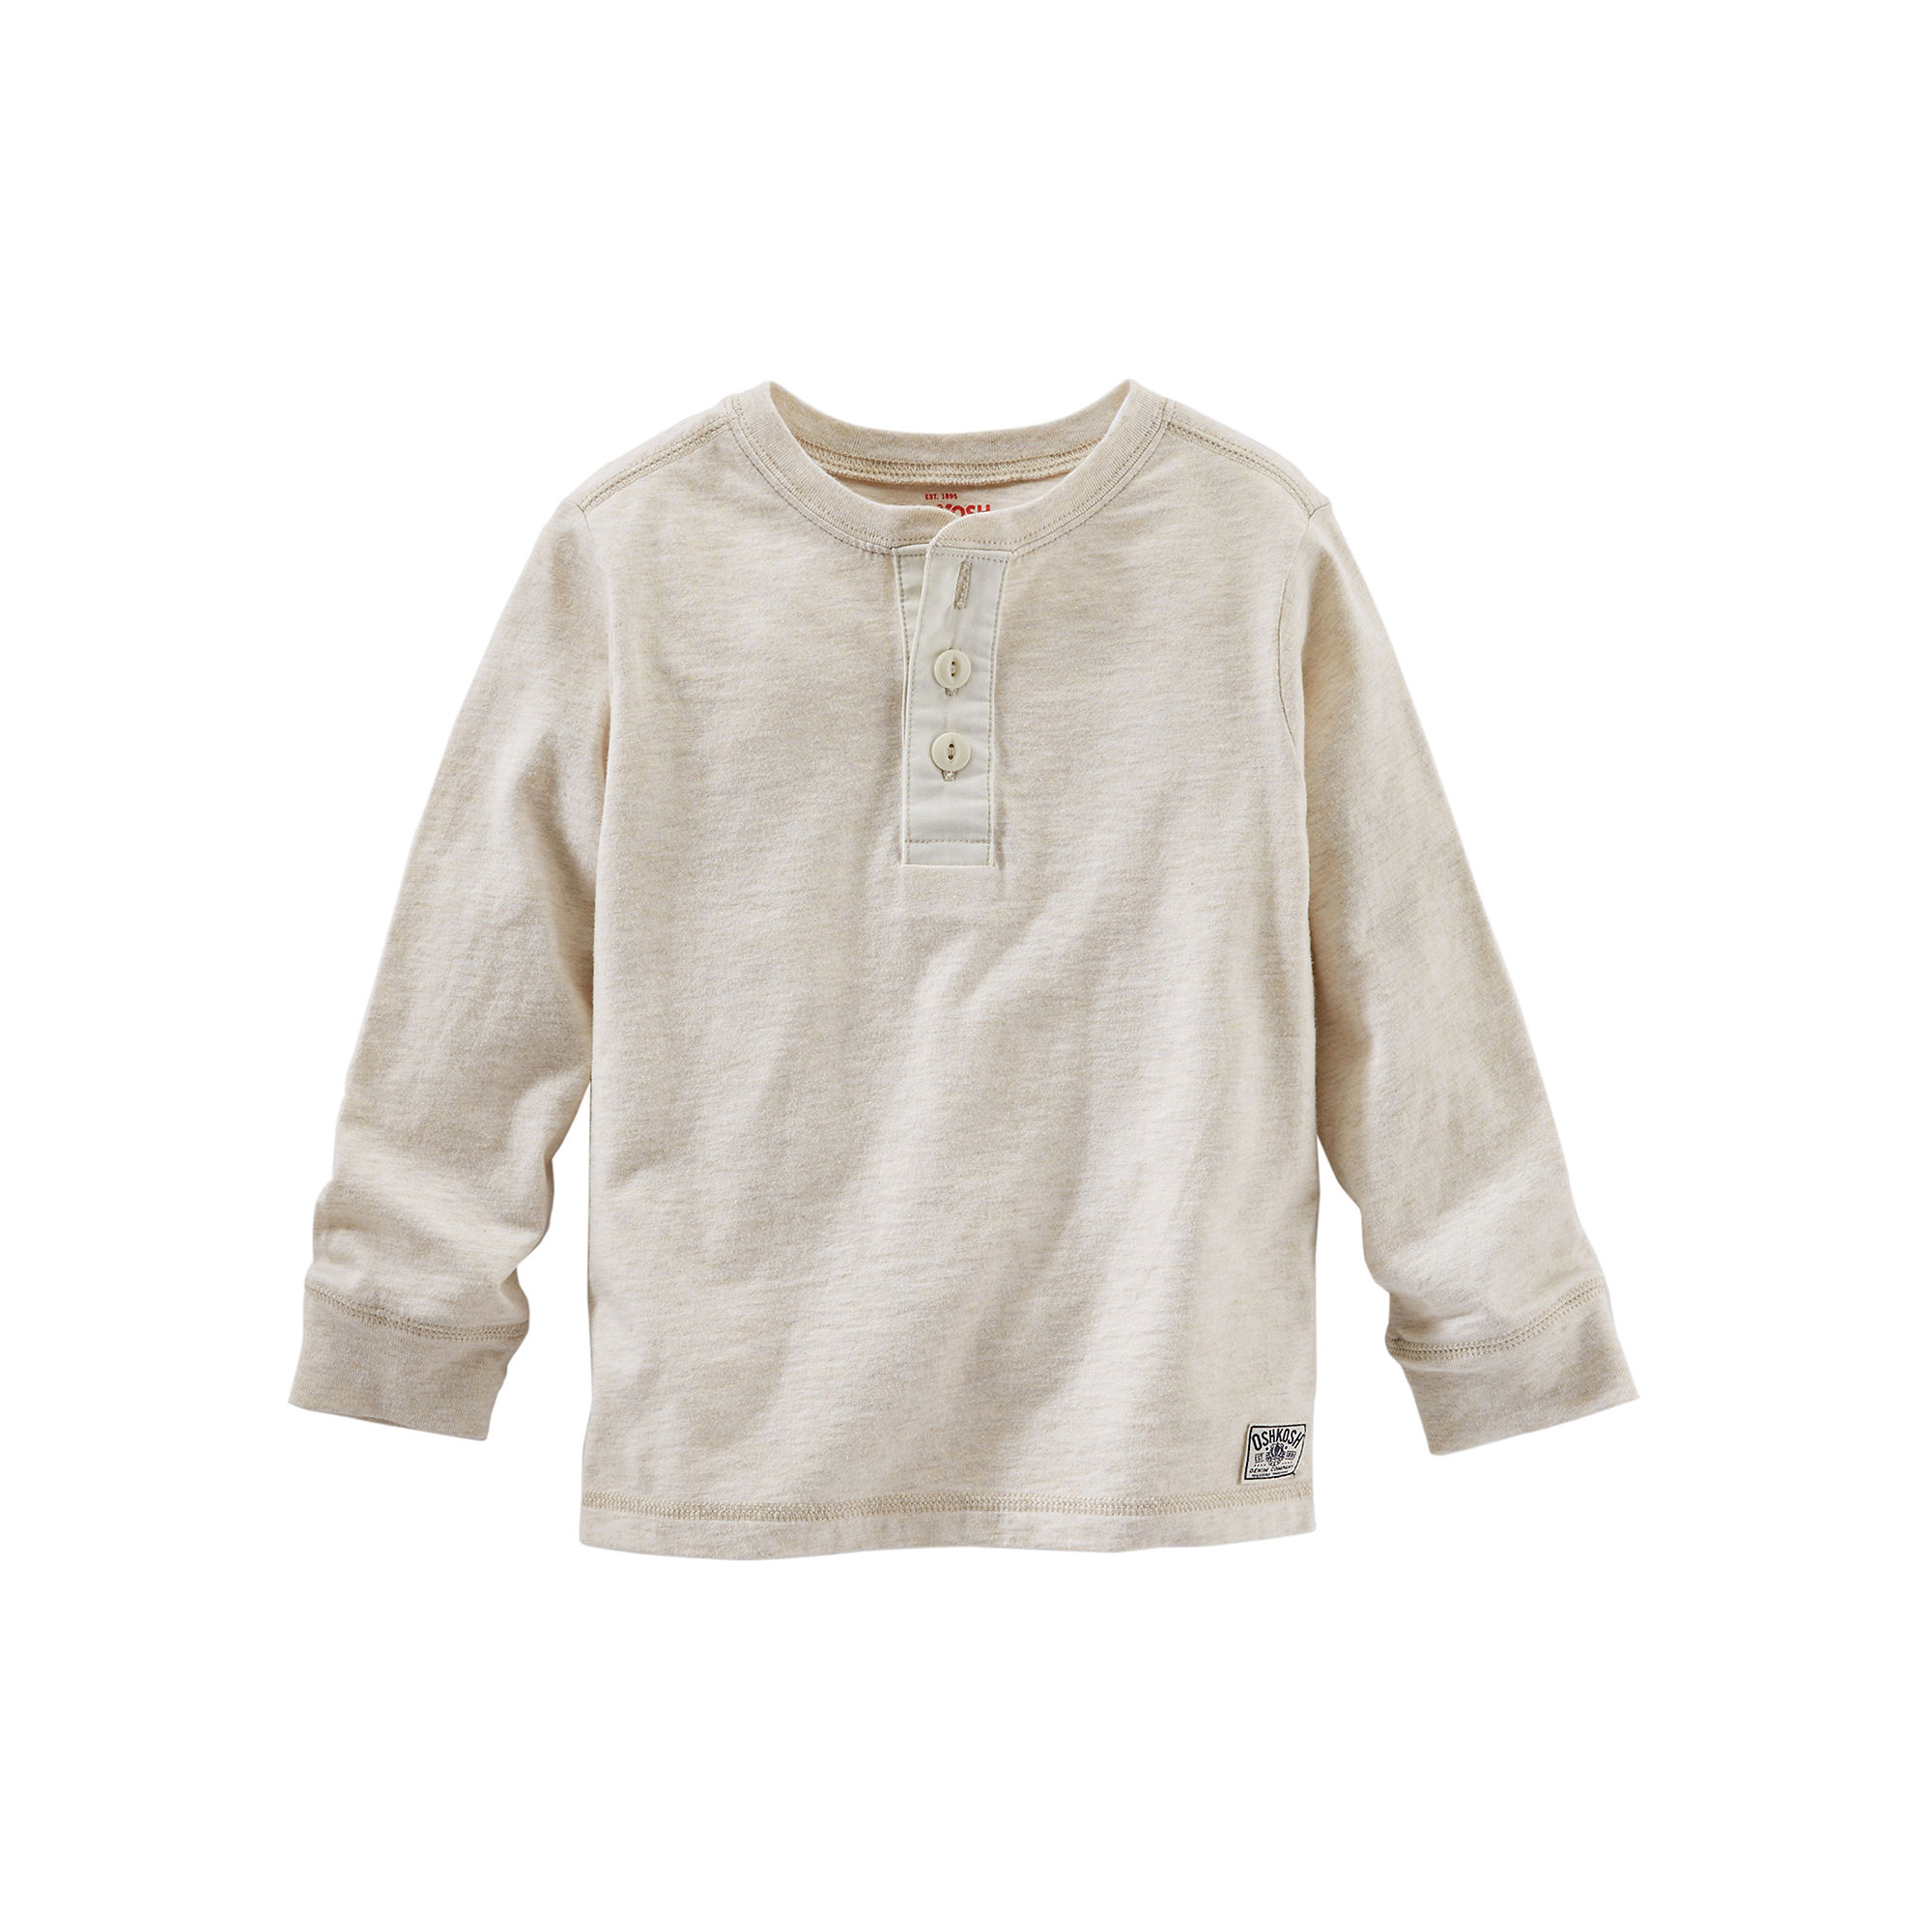 d1c56fb63 ... UPC 887044902435 product image for OshKosh B'gosh Long-Sleeve Henley -  Toddler Boys ...